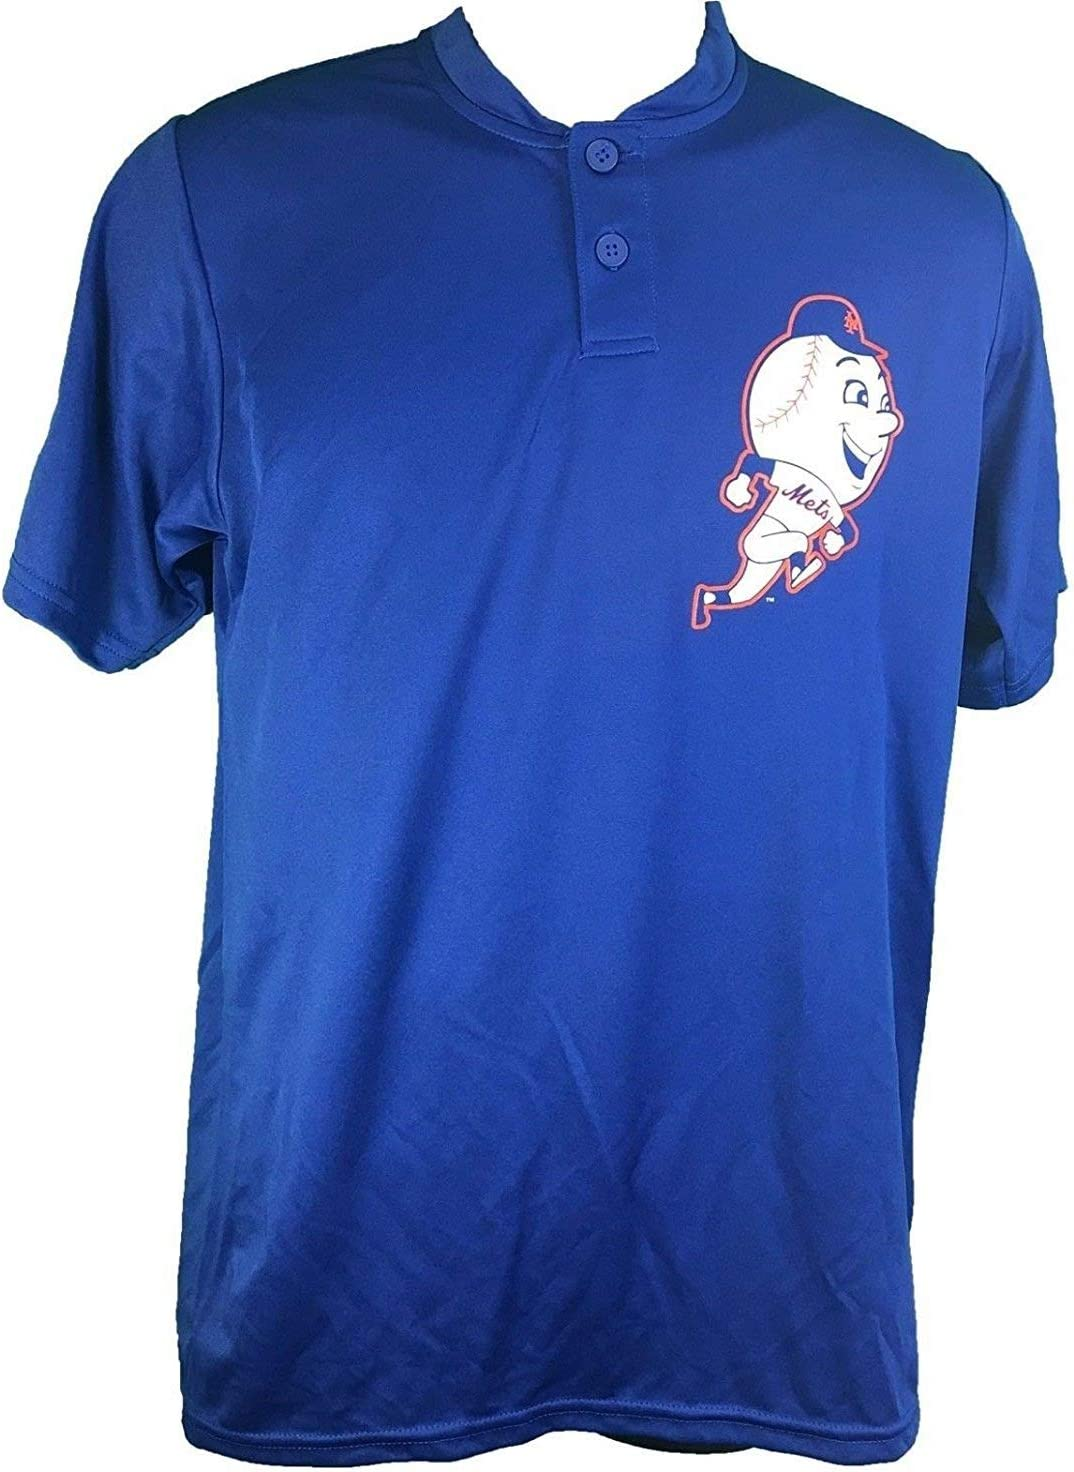 Majestic New York Mets Cooperstown Collection Two Button Dri Fit Jersey T-Shirt